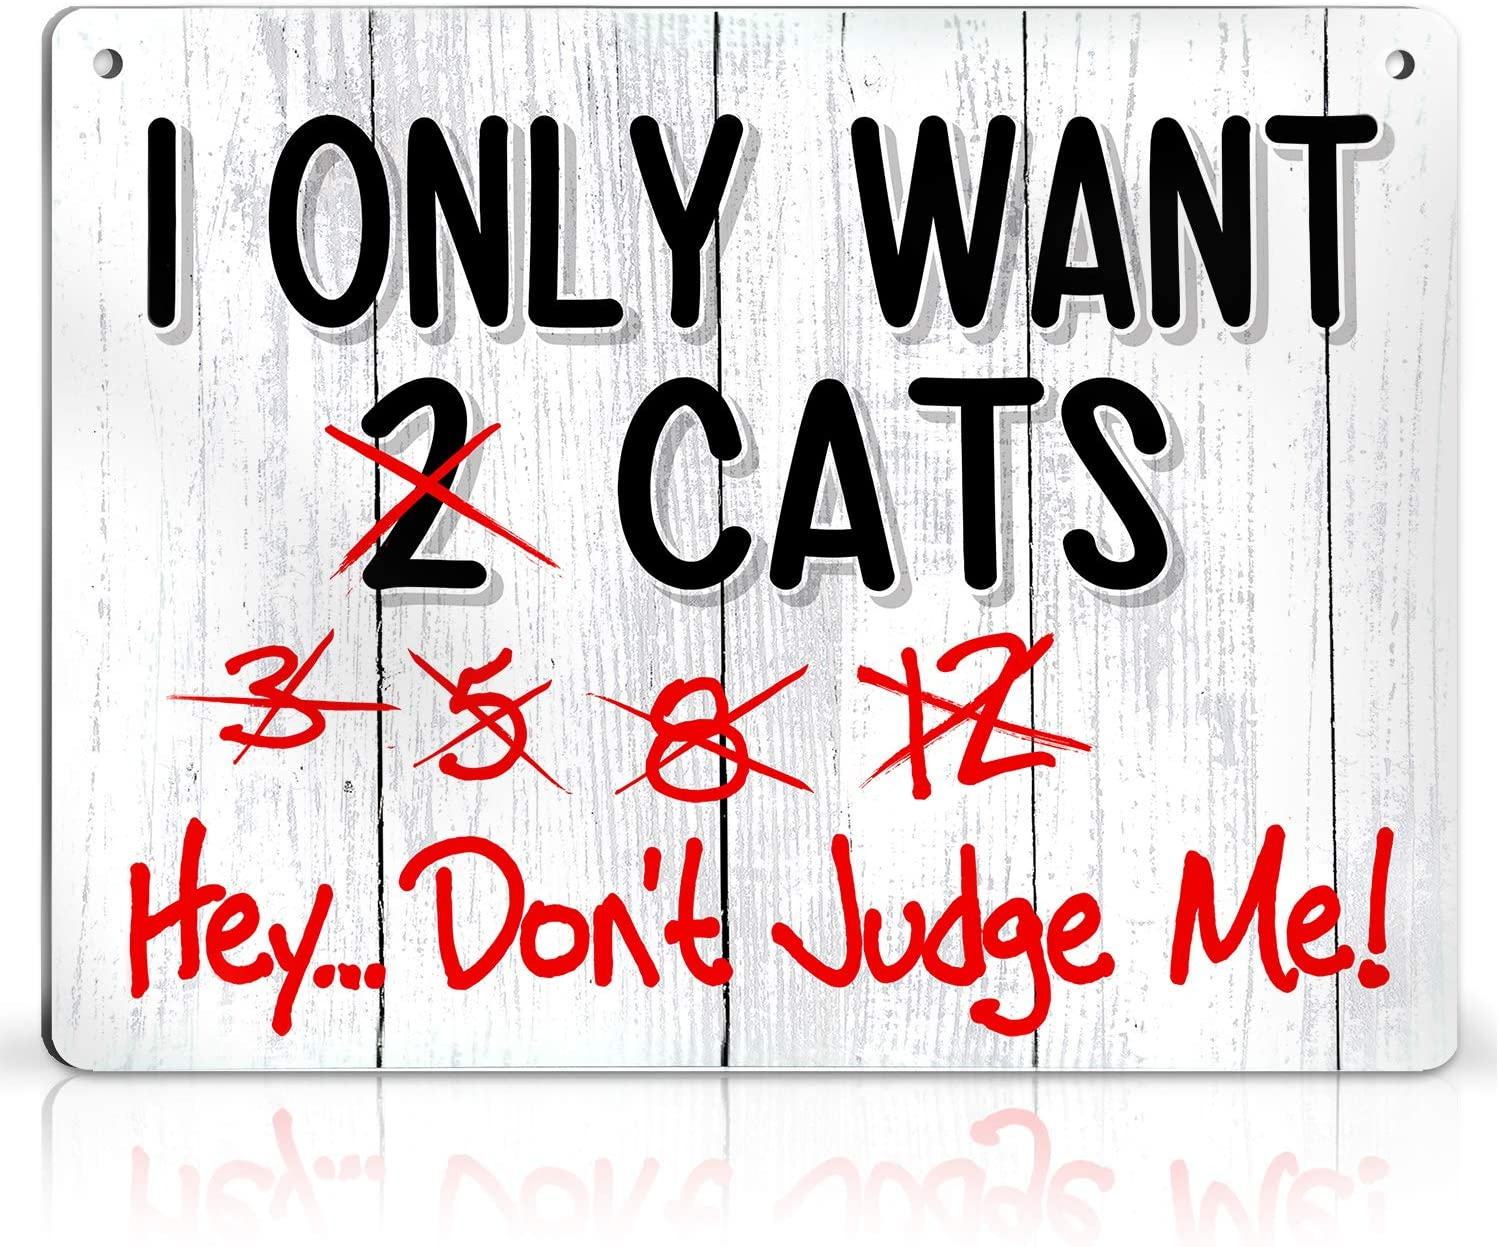 Bigtime Signs I Only Want Cats - Funny Farm, Home, Kitchen, Outdoor, Kitten and House Decorations - 2 Holes for Easy Hanging, Strong Material - Silly Decor for Kitty Fans, Farmers - 9 x 12 inch